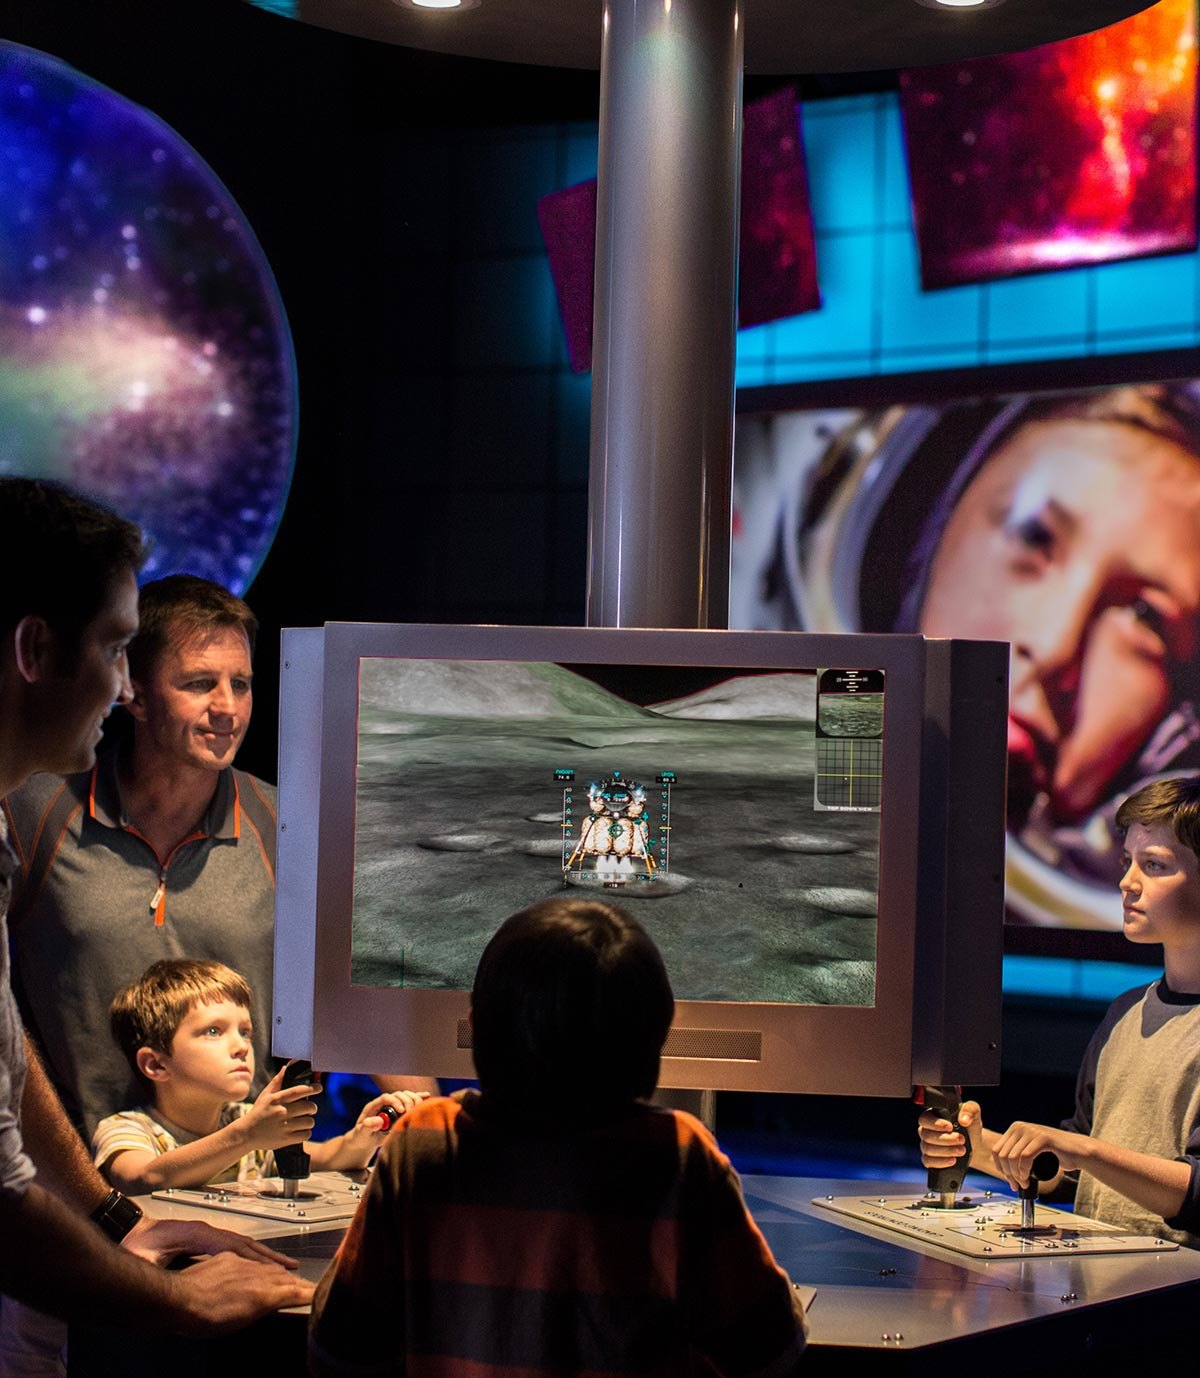 Journey to Mars: Explorers Wanted simulators